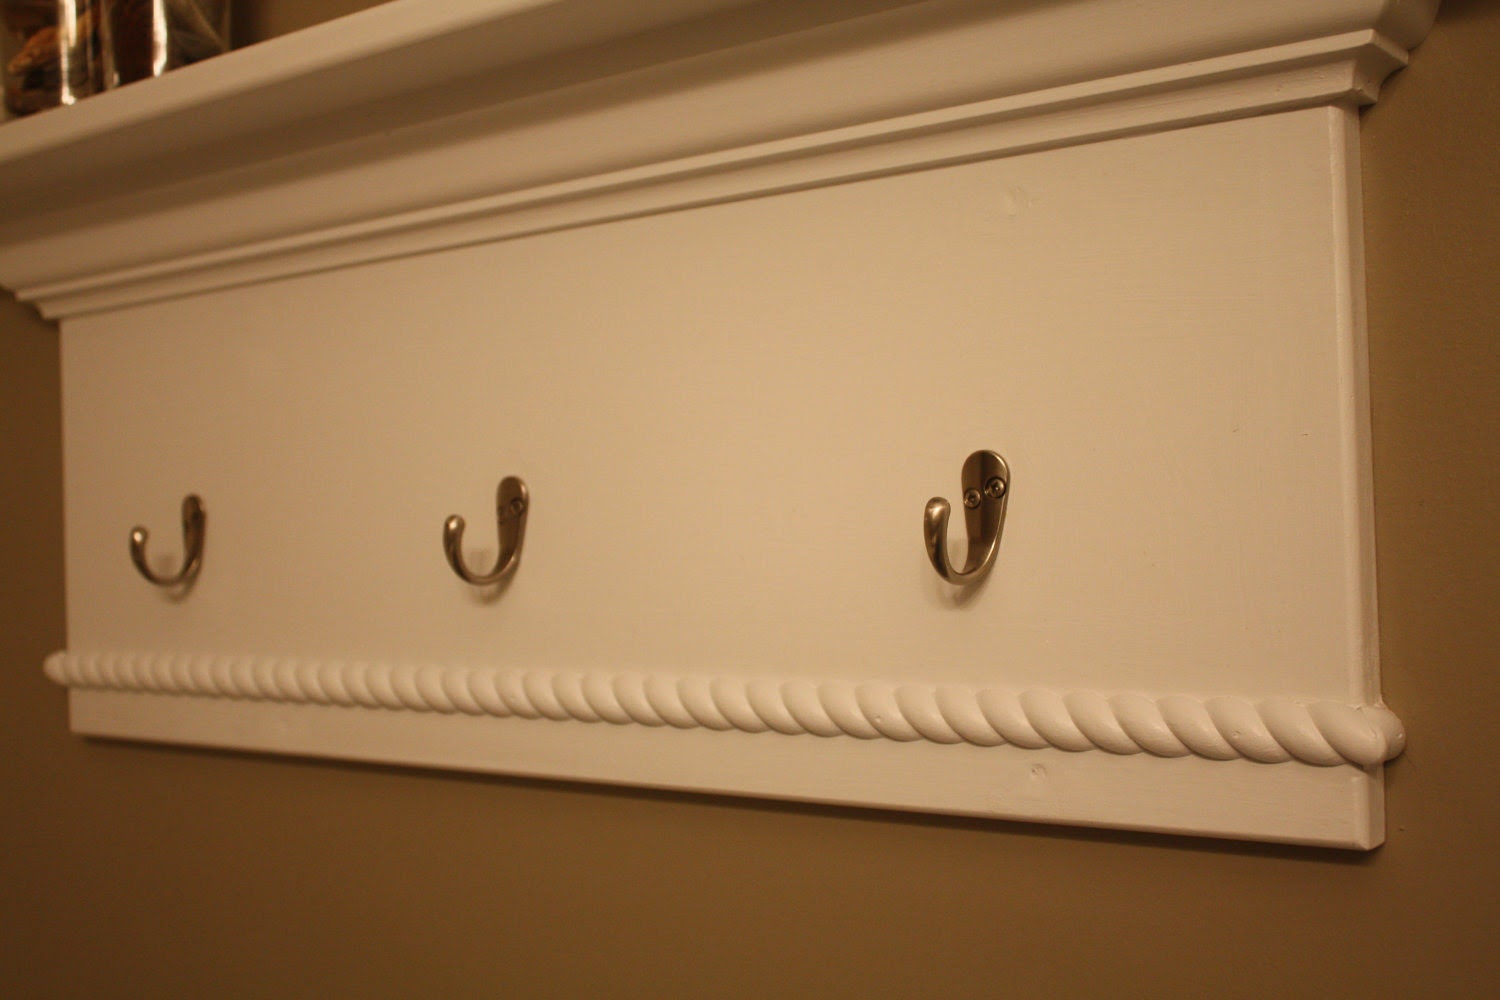 Wall Mounted Shelf with Towel/Coat Hooks